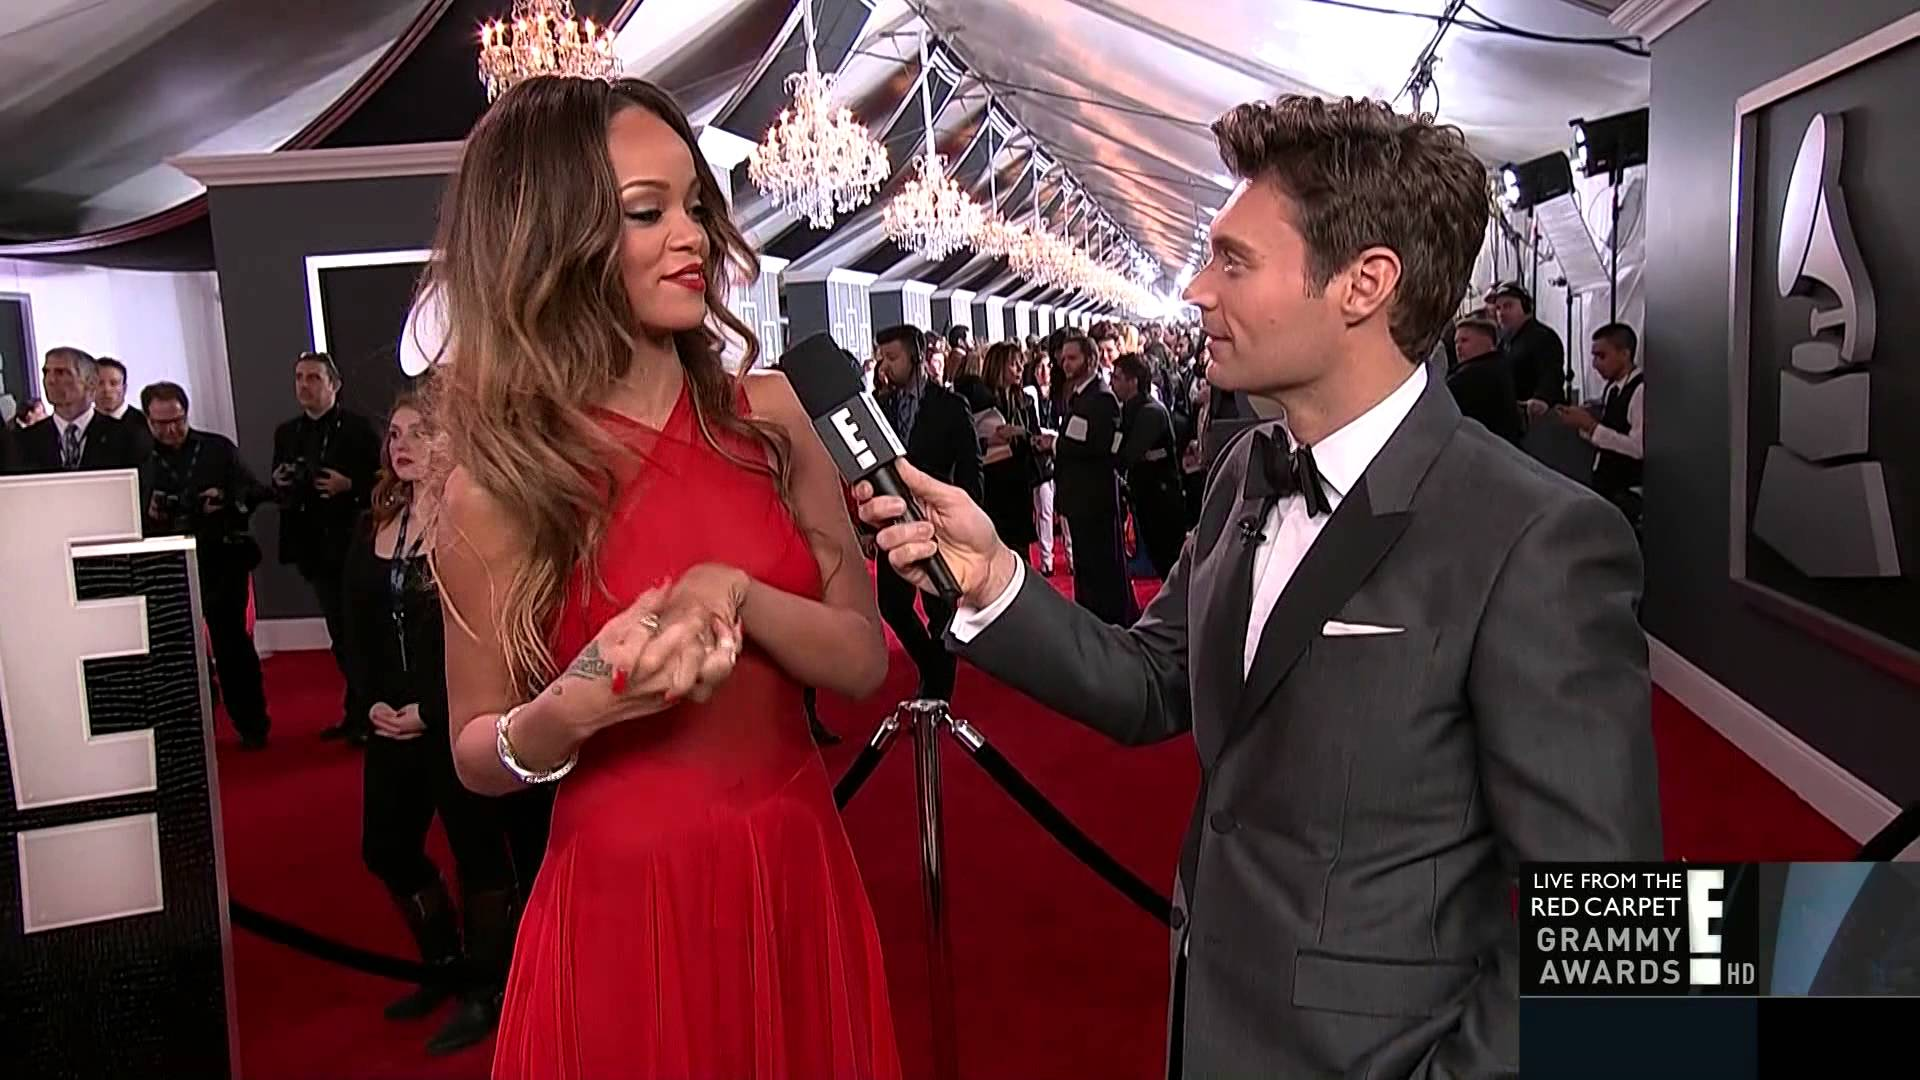 Questions we SHOULD ask female artists on the Grammy red carpet